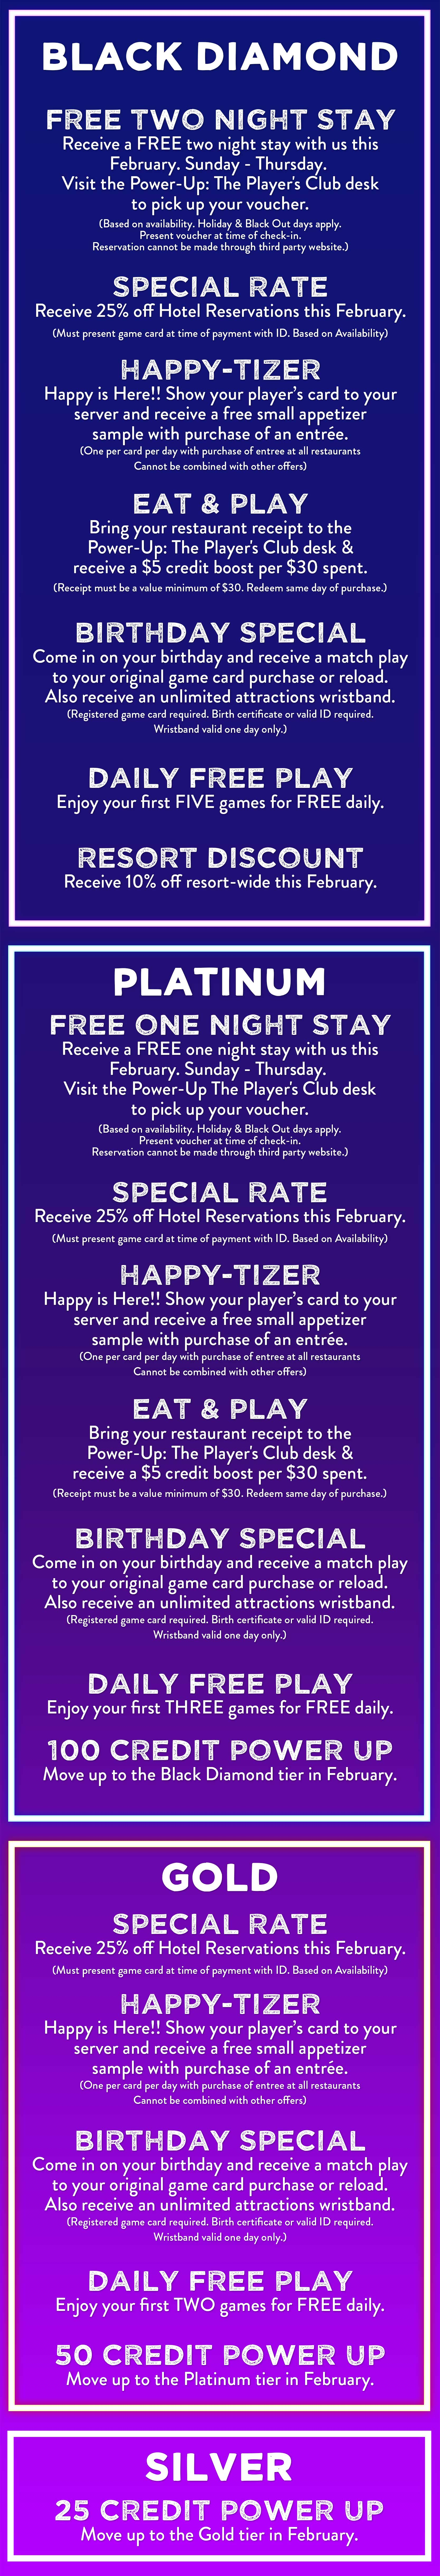 Prizes and Giveways for February! Call Margaritaville for Power-Up the Player's Club desk for the latest deals, prizes and giveaways.